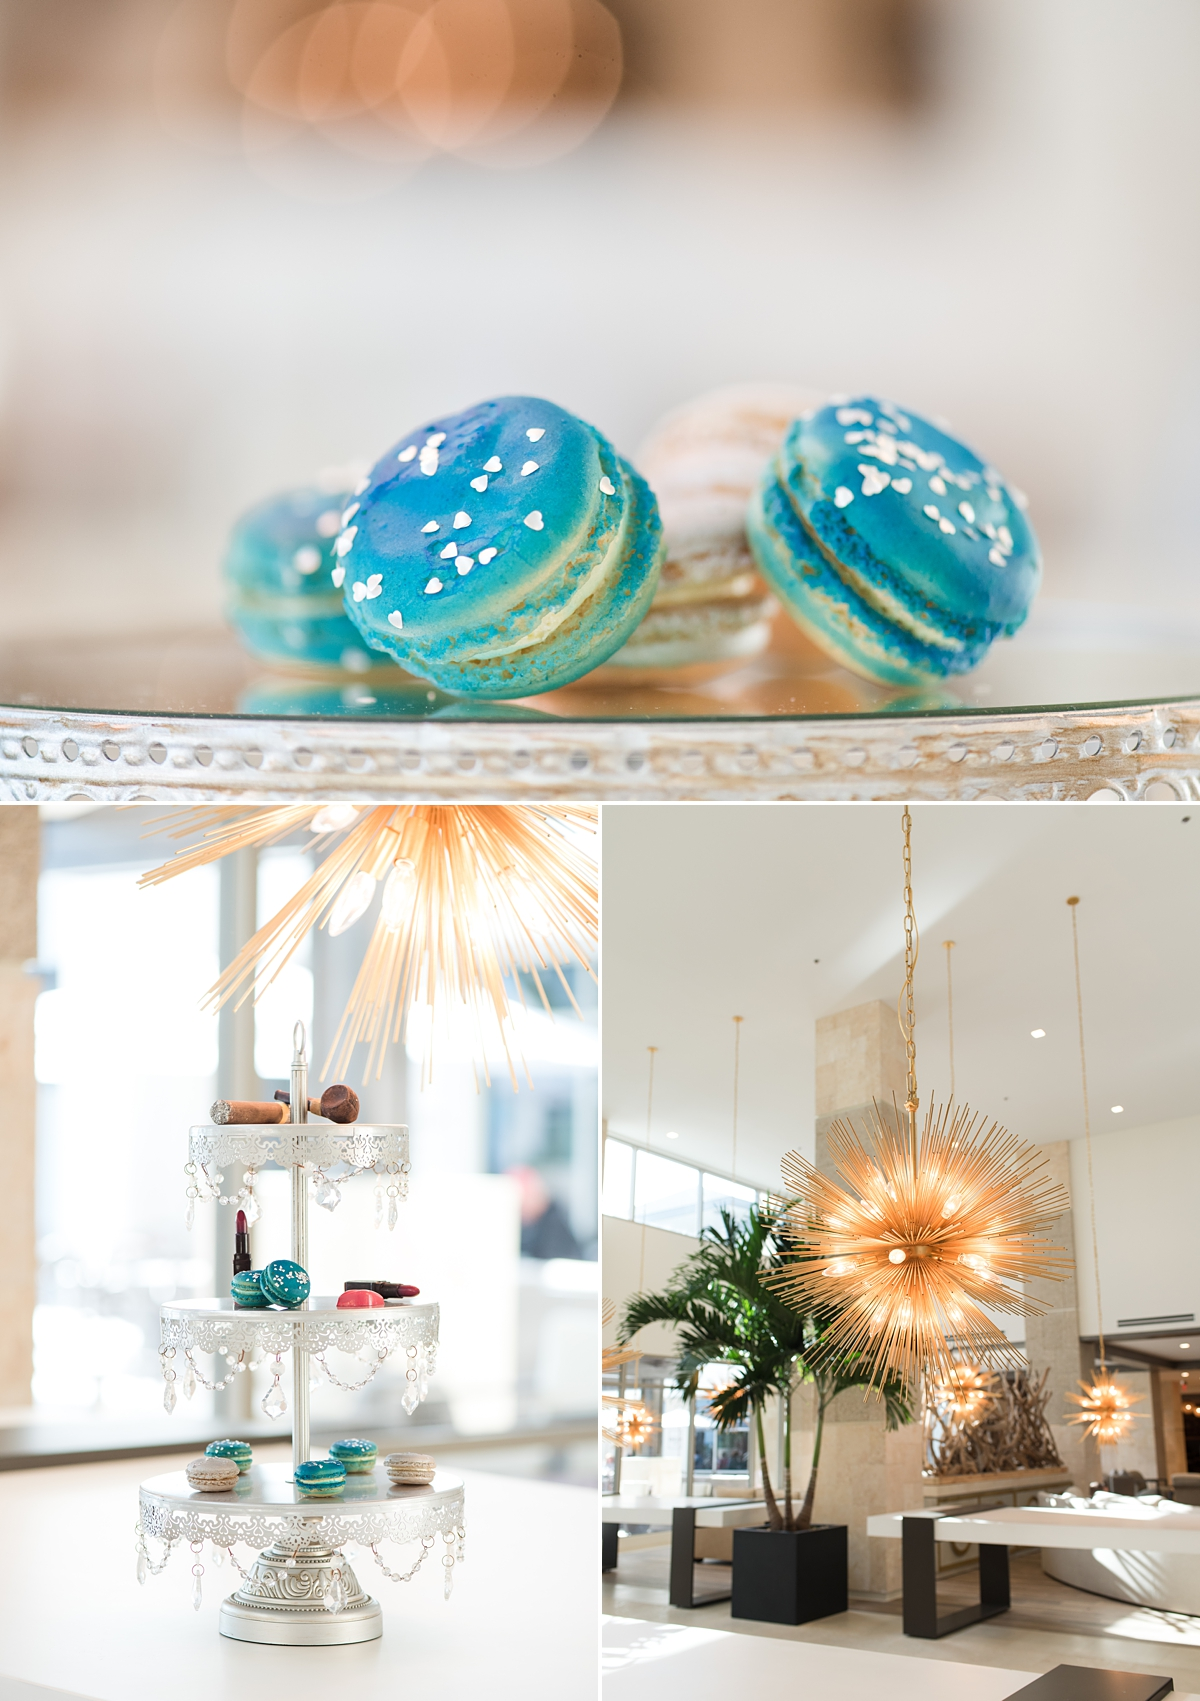 Embassy Suites St Augustine-Styled Wedding Fashion-Wedding Tables-Wedding Favors-Macaroons and Chocolate.jpg